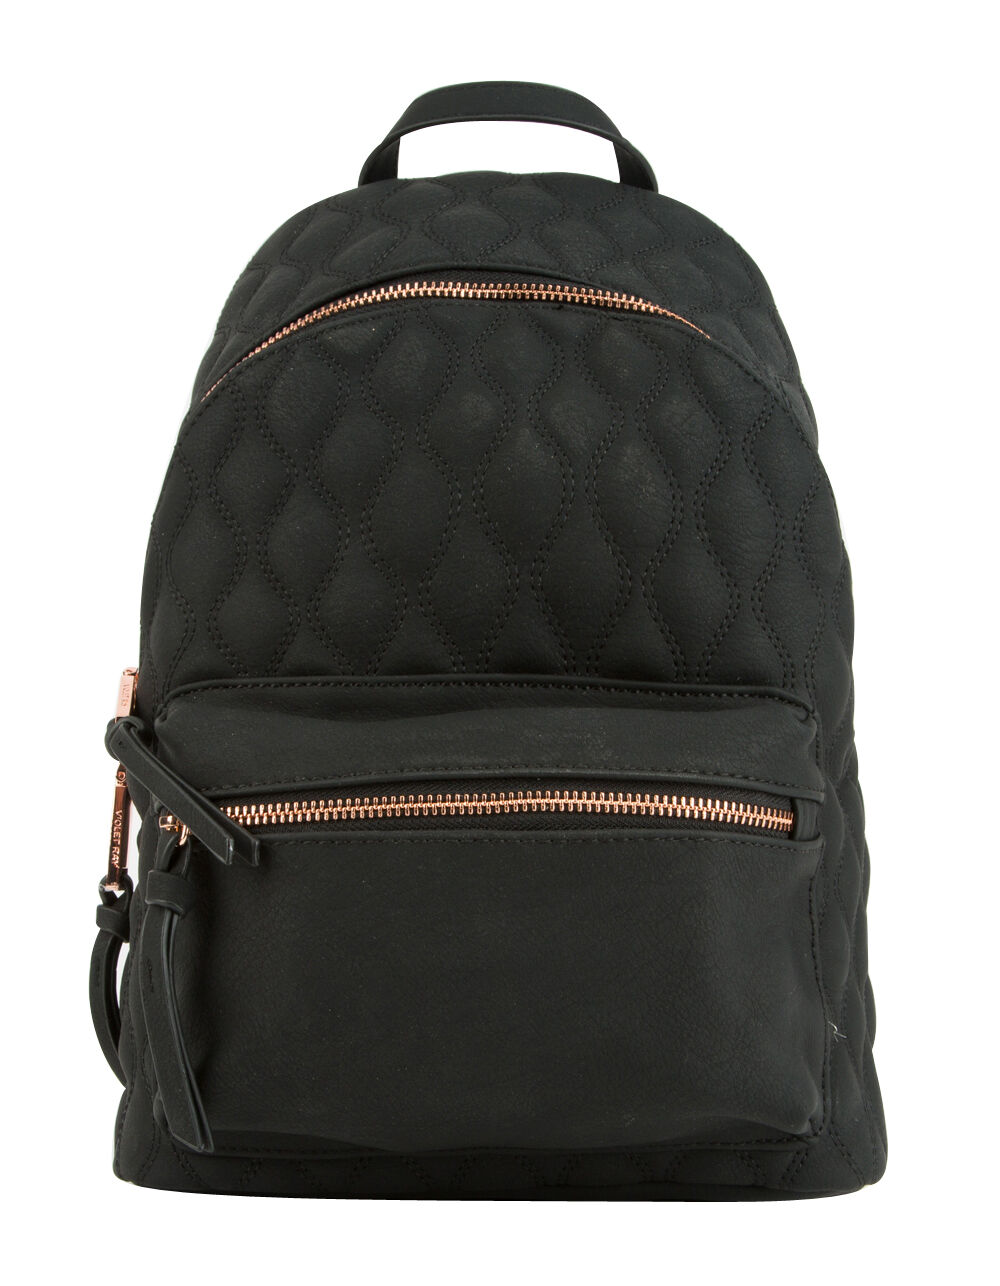 VIOLET RAY KIANA MINI BACKPACK